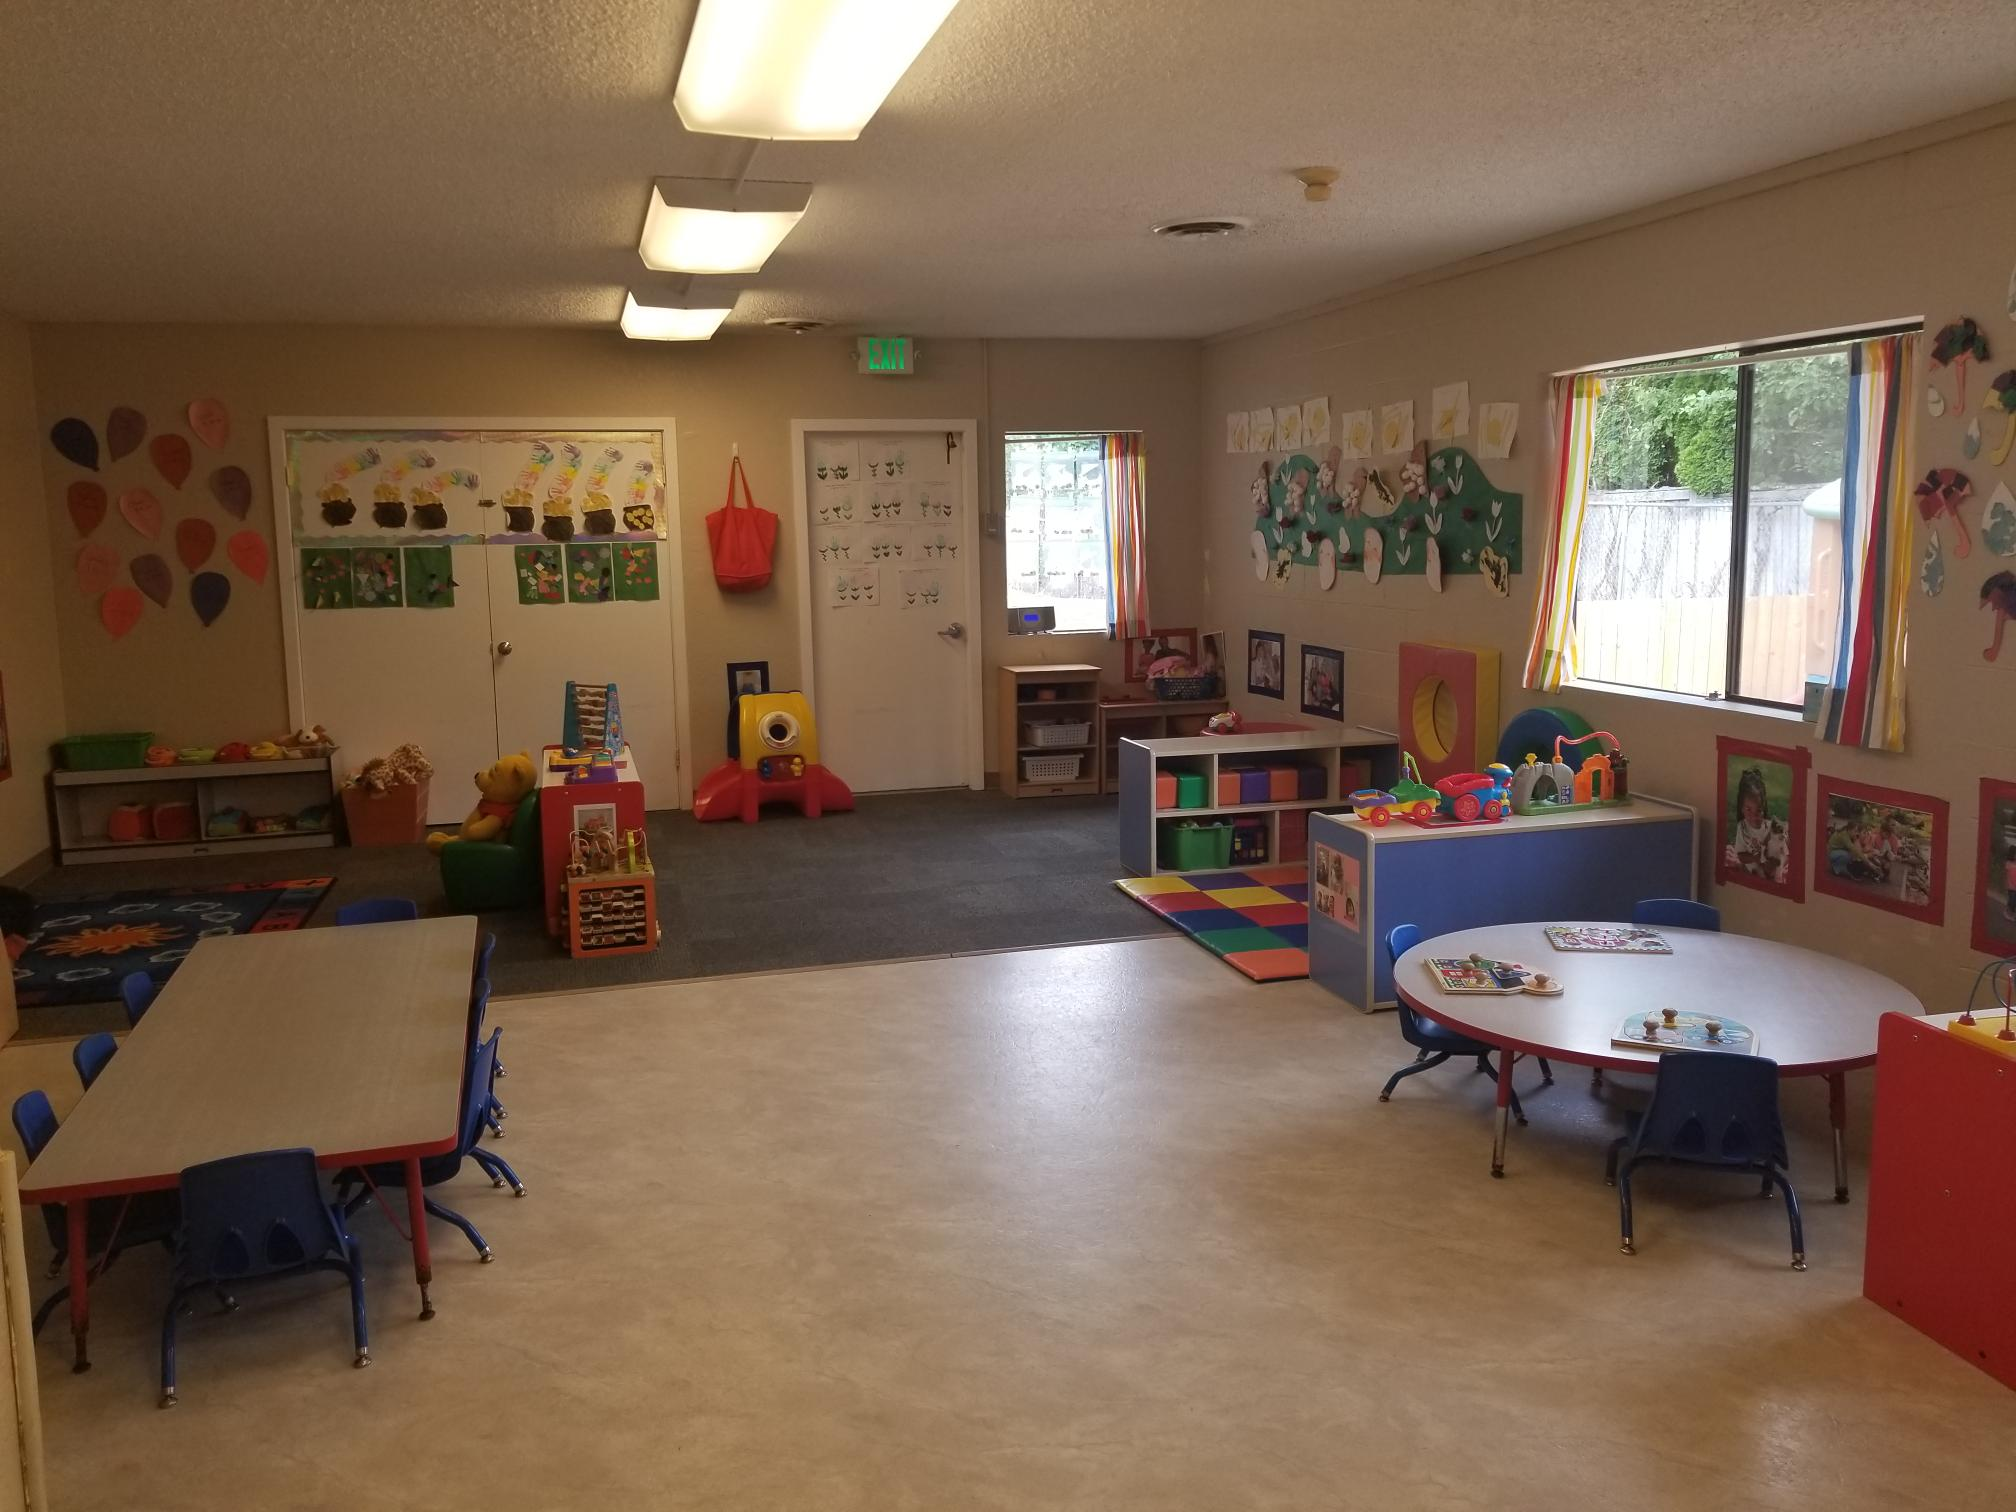 Toddler room - Shooting Star Preschool and Childcare